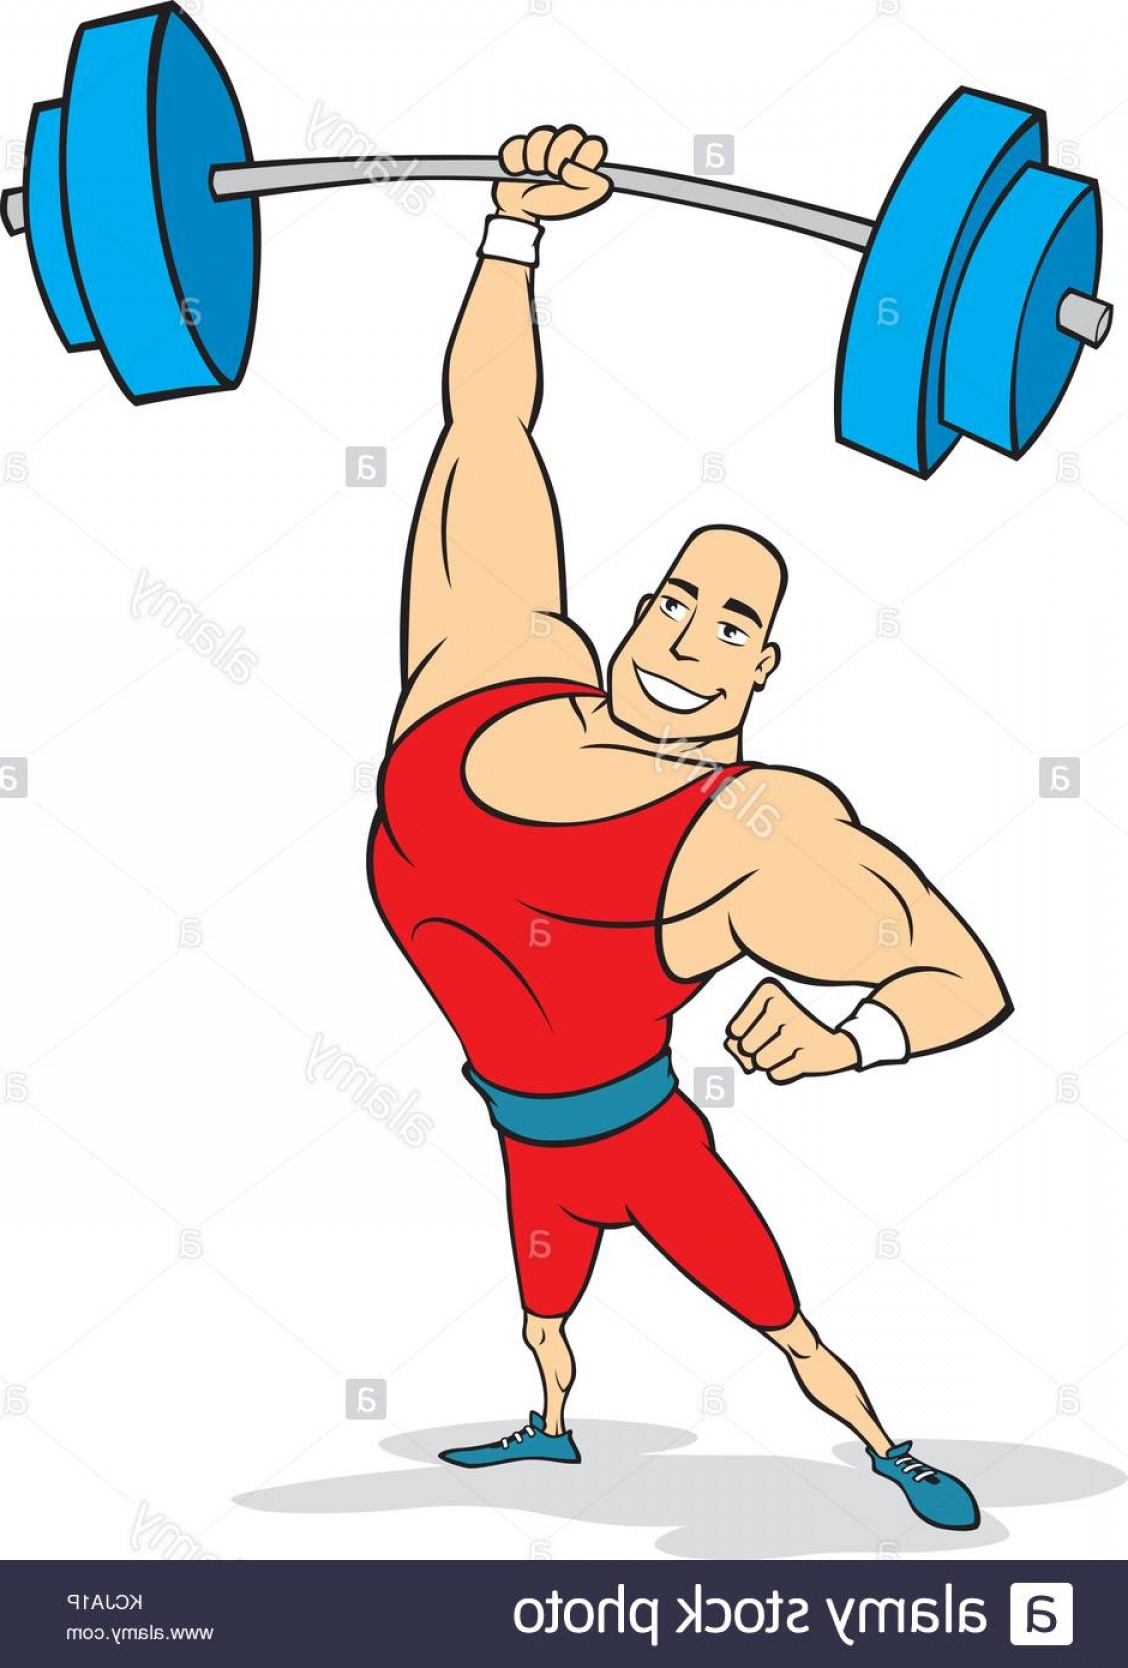 Weightlifter Vector Art: Stock Photo Vector Cartoon Of A Weightlifter In Red Leotard